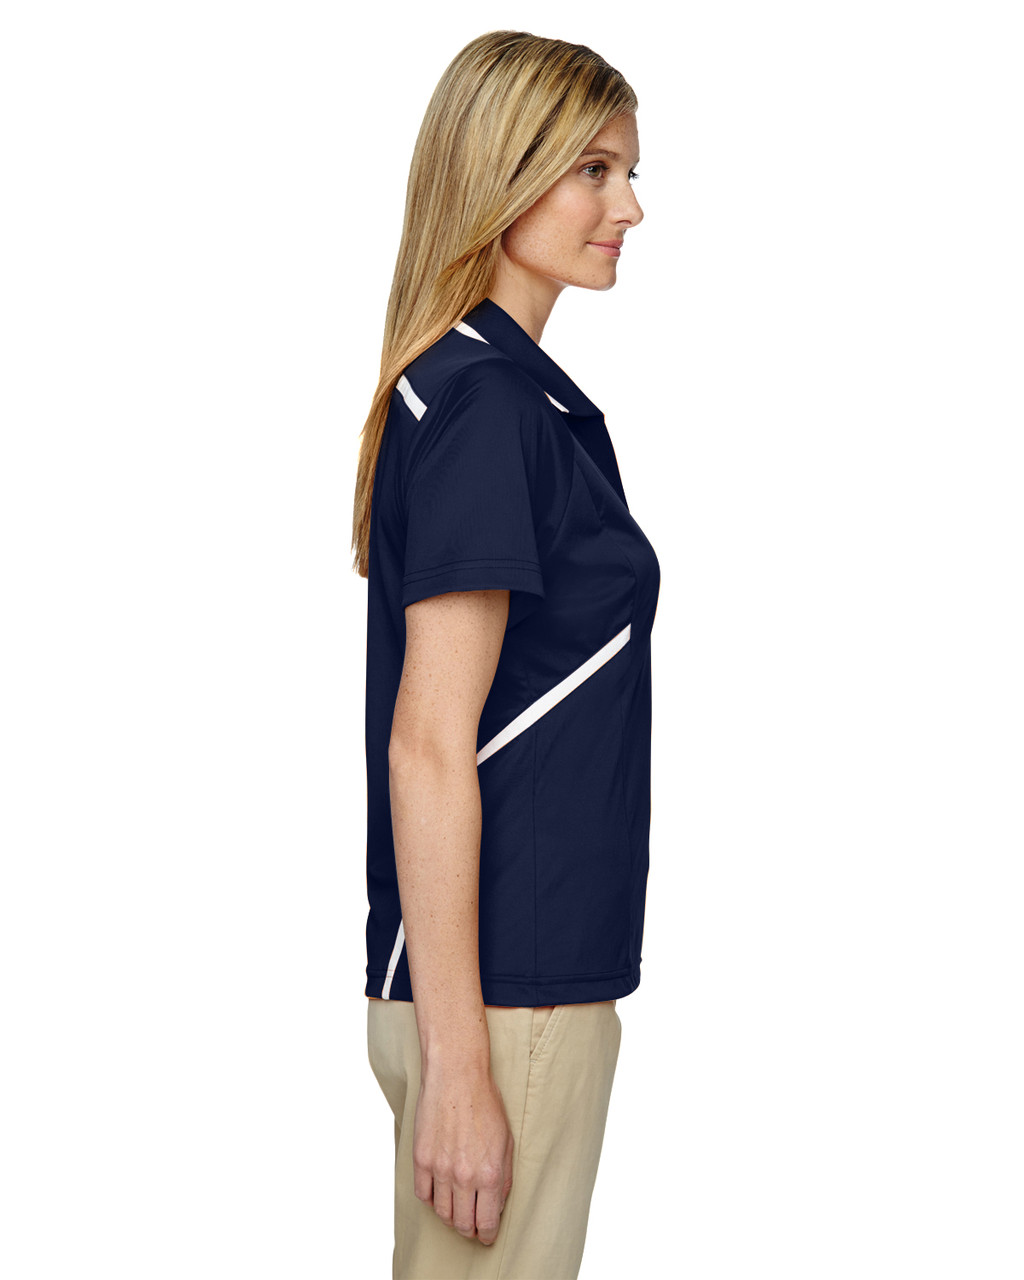 Classic Navy - Side, 75118 Ash City - Extreme Eperformance Propel Interlock Polo Shirt with Contrast Tape   BlankClothing.ca